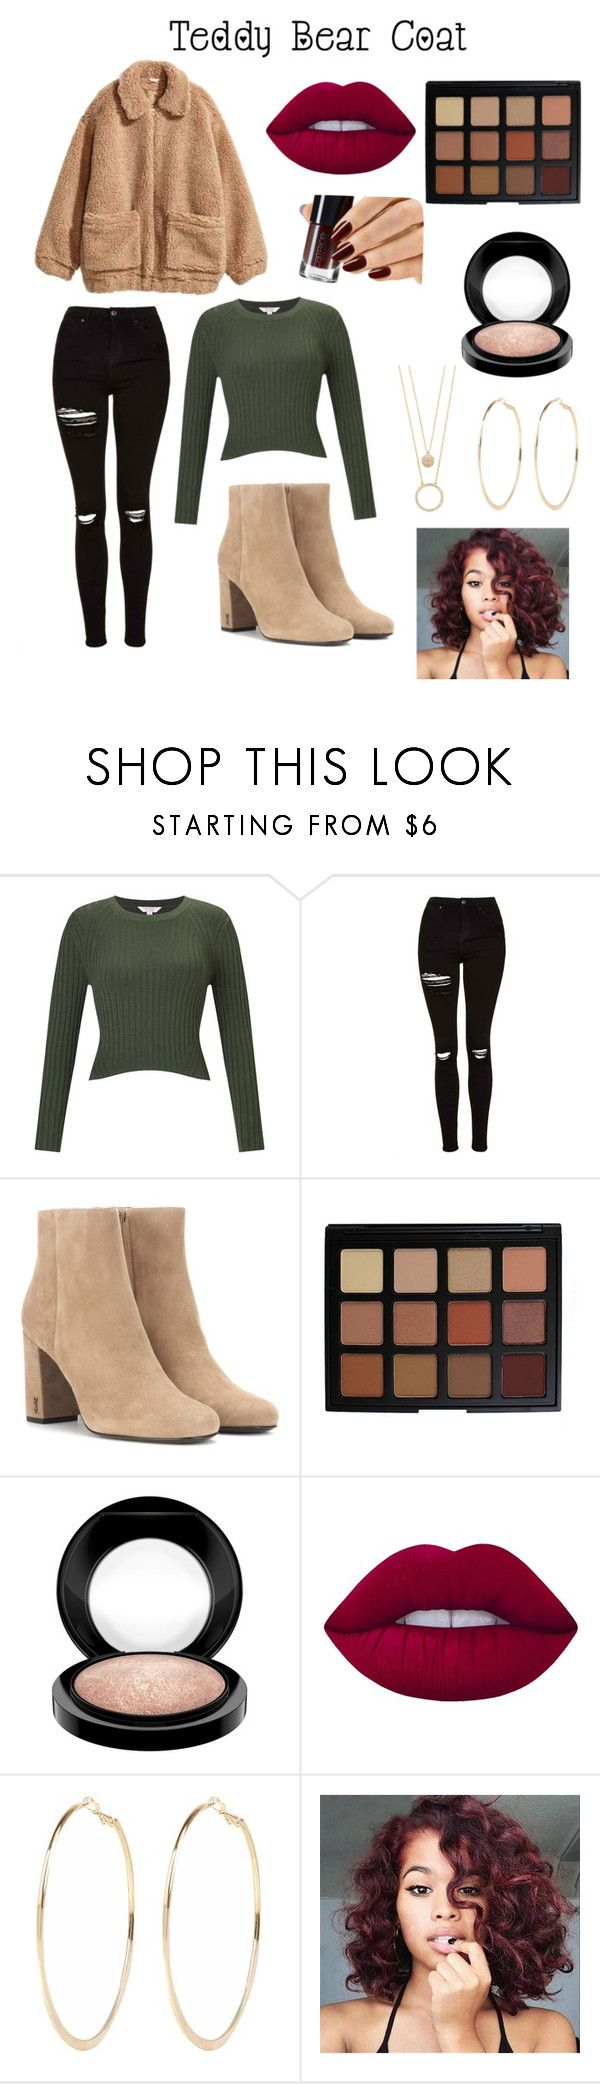 """""""Teddy Bear Coat Contest"""" by babygirl565001 ❤ liked on Polyvore featuring Miss Selfridge, H&M, Topshop, Yves Saint Laurent, Morphe, MAC Cosmetics, Lime Crime, River Island, Kate Spade and cute"""